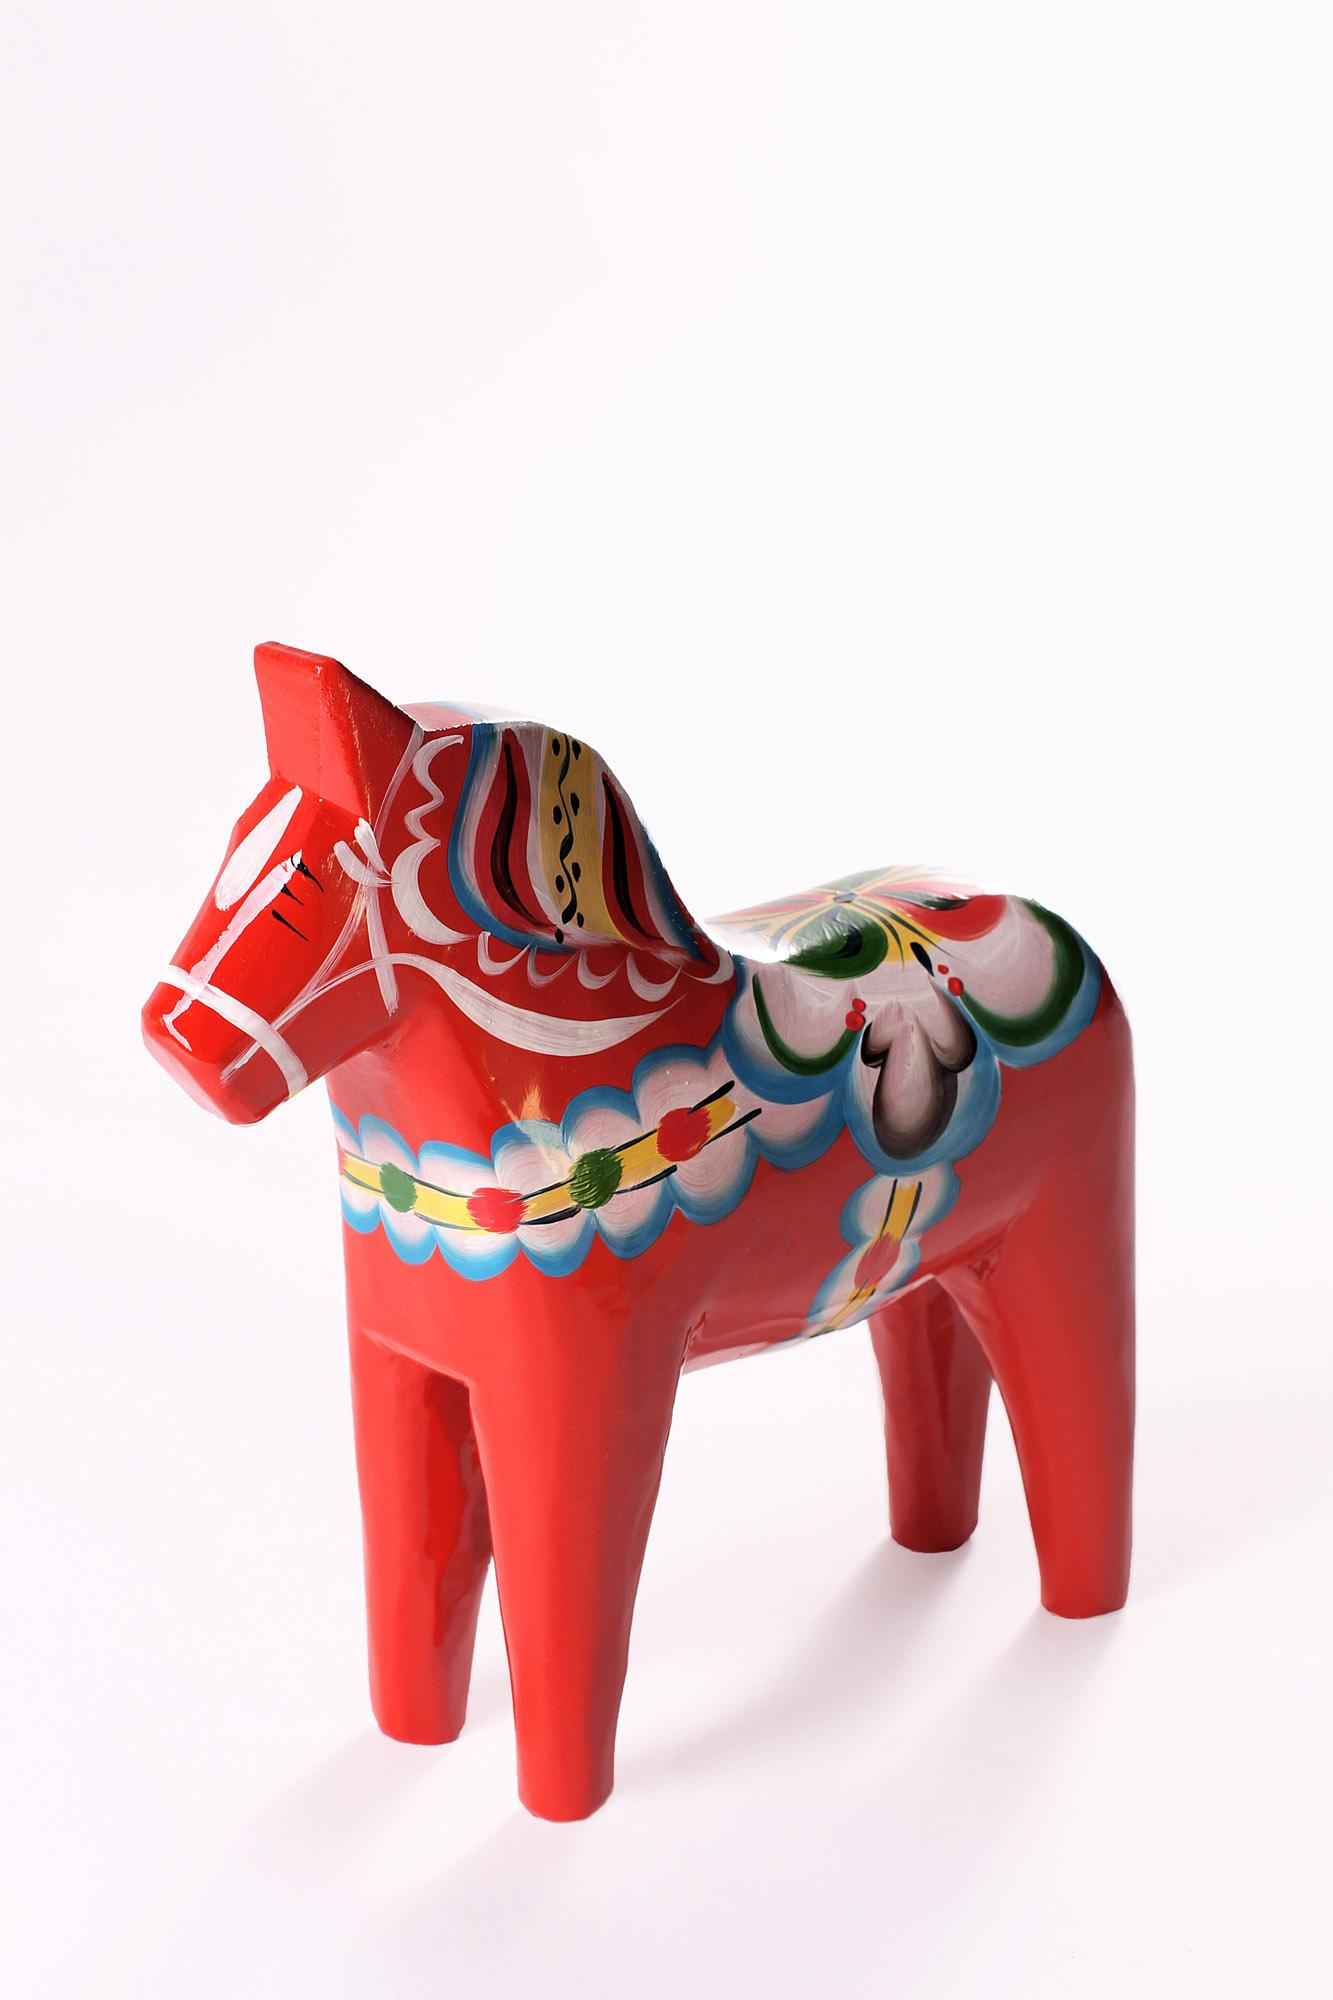 Dala horses are made in many sizes, from 1 cm to 1.5 metres (occasionally even bigger), and they are available in a variety of different colors and patterns. – © Nils Olsson Dalahästar